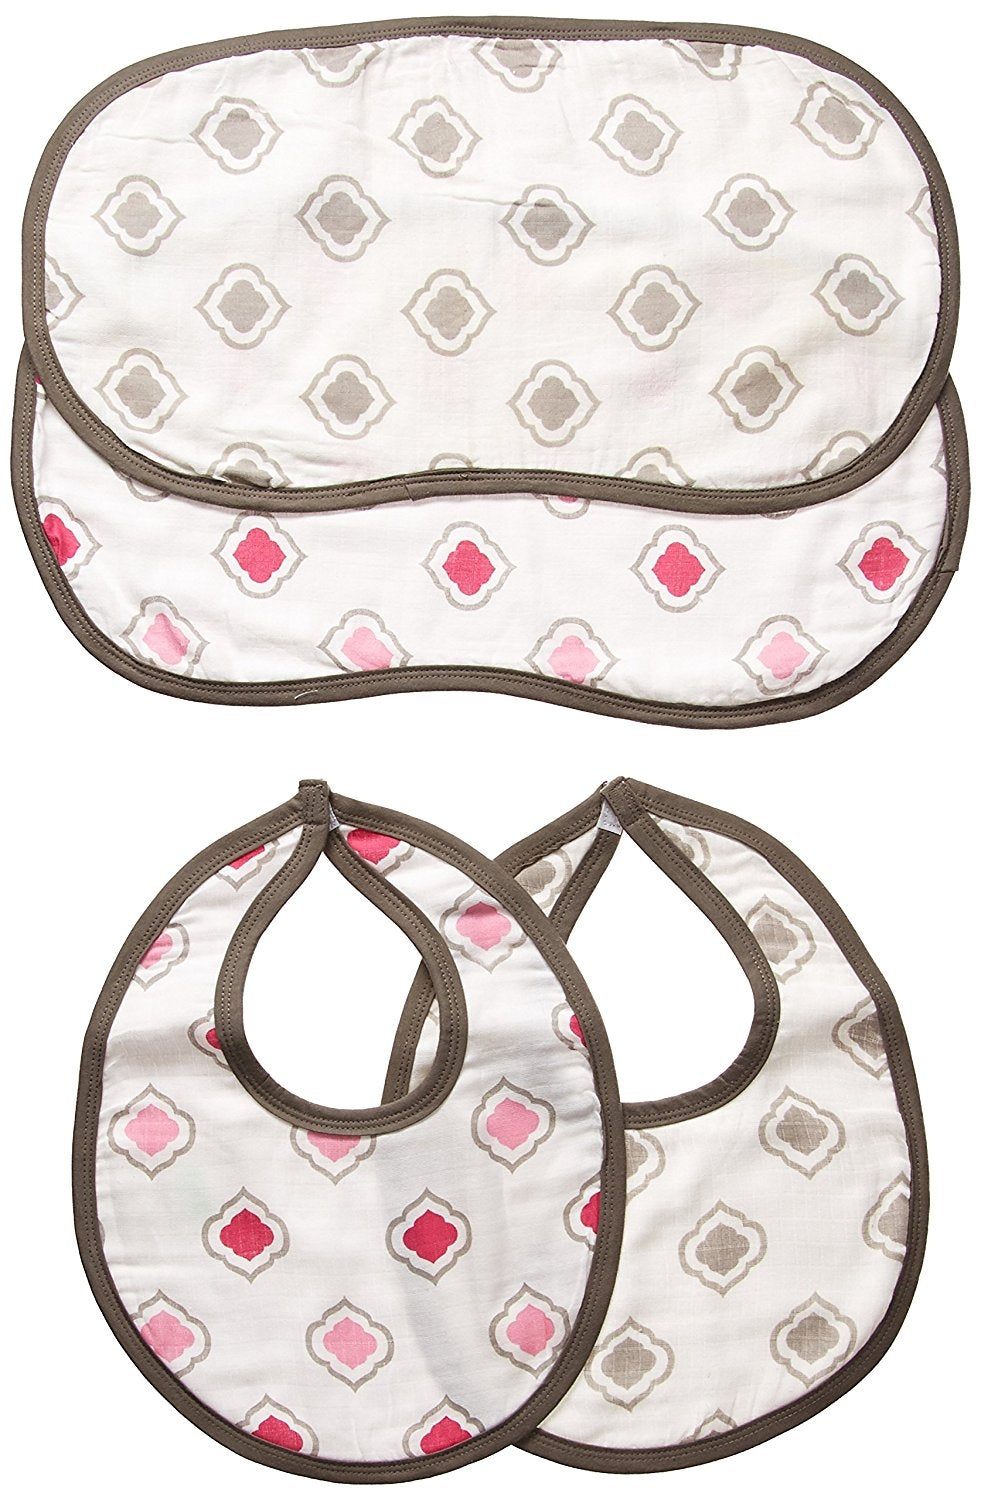 Bacati Moroccan Tiles Muslin 4 Piece Set of Burpies or Bibs, Pink/Grey